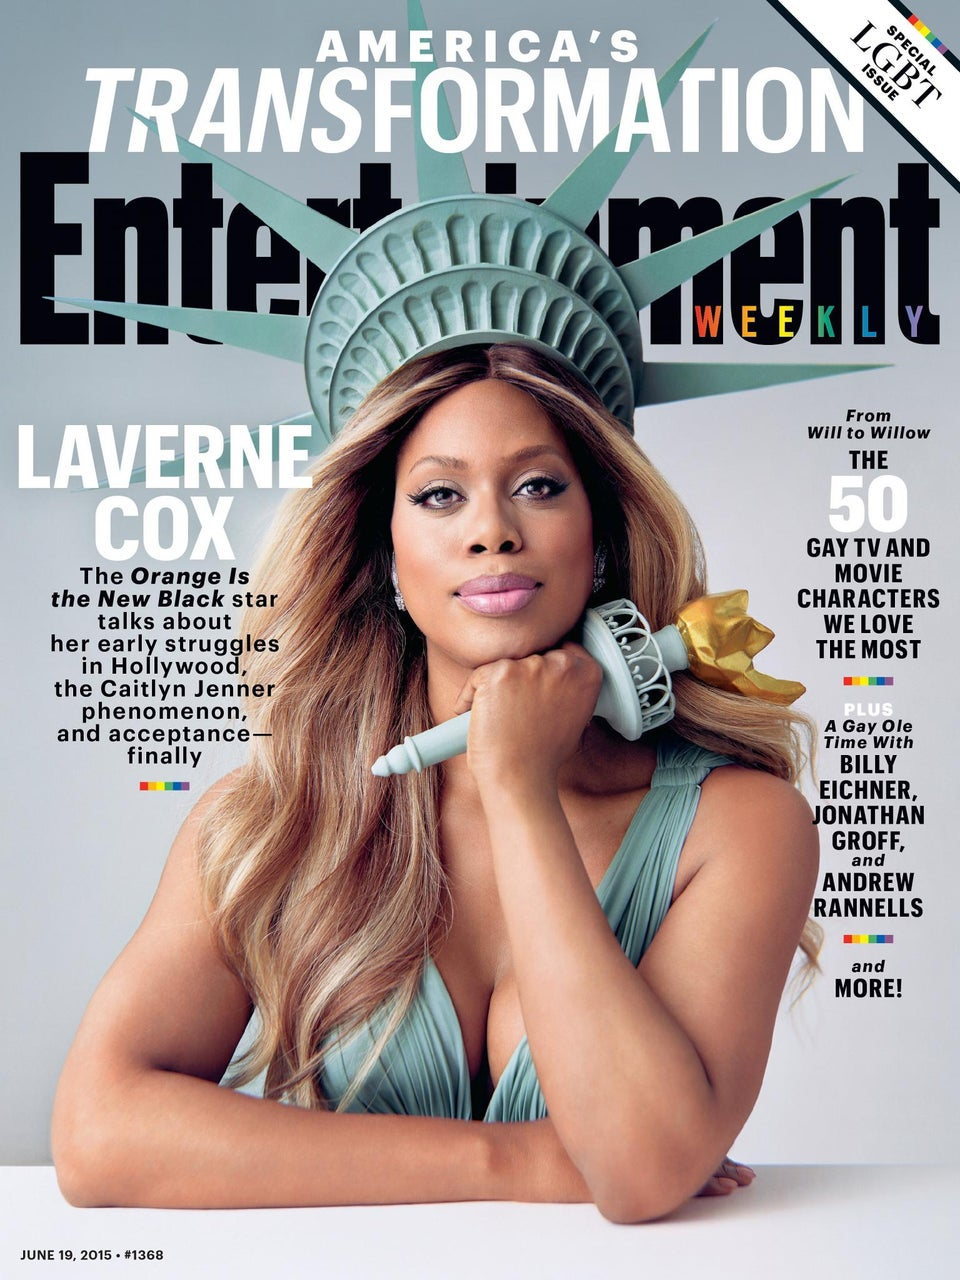 Laverne Cox Slays on the Cover of Entertainment Weekly's LGBT issue